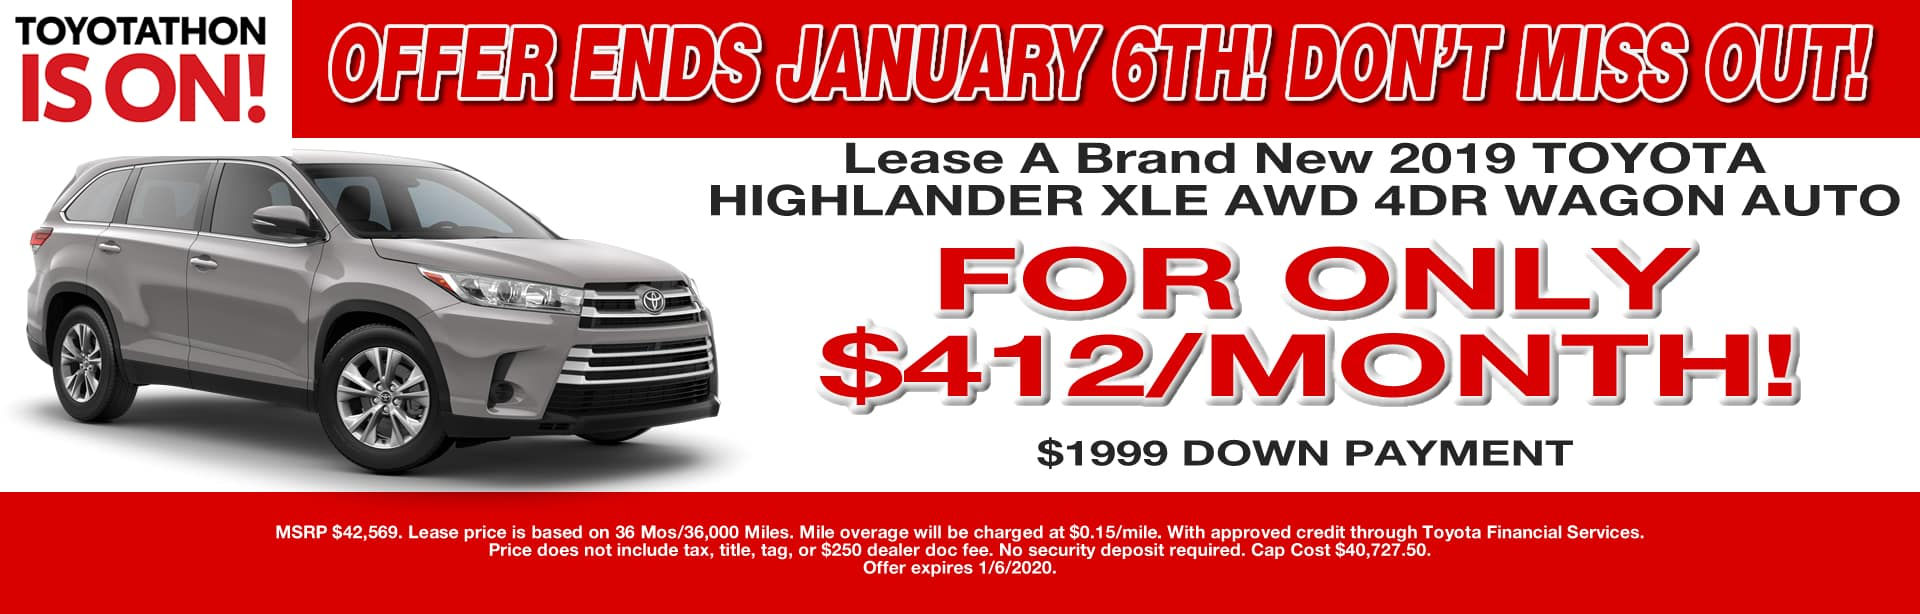 HIGHLANDER LEASE OFFER CAIN TOYOTA NORTH CANTON OHIO